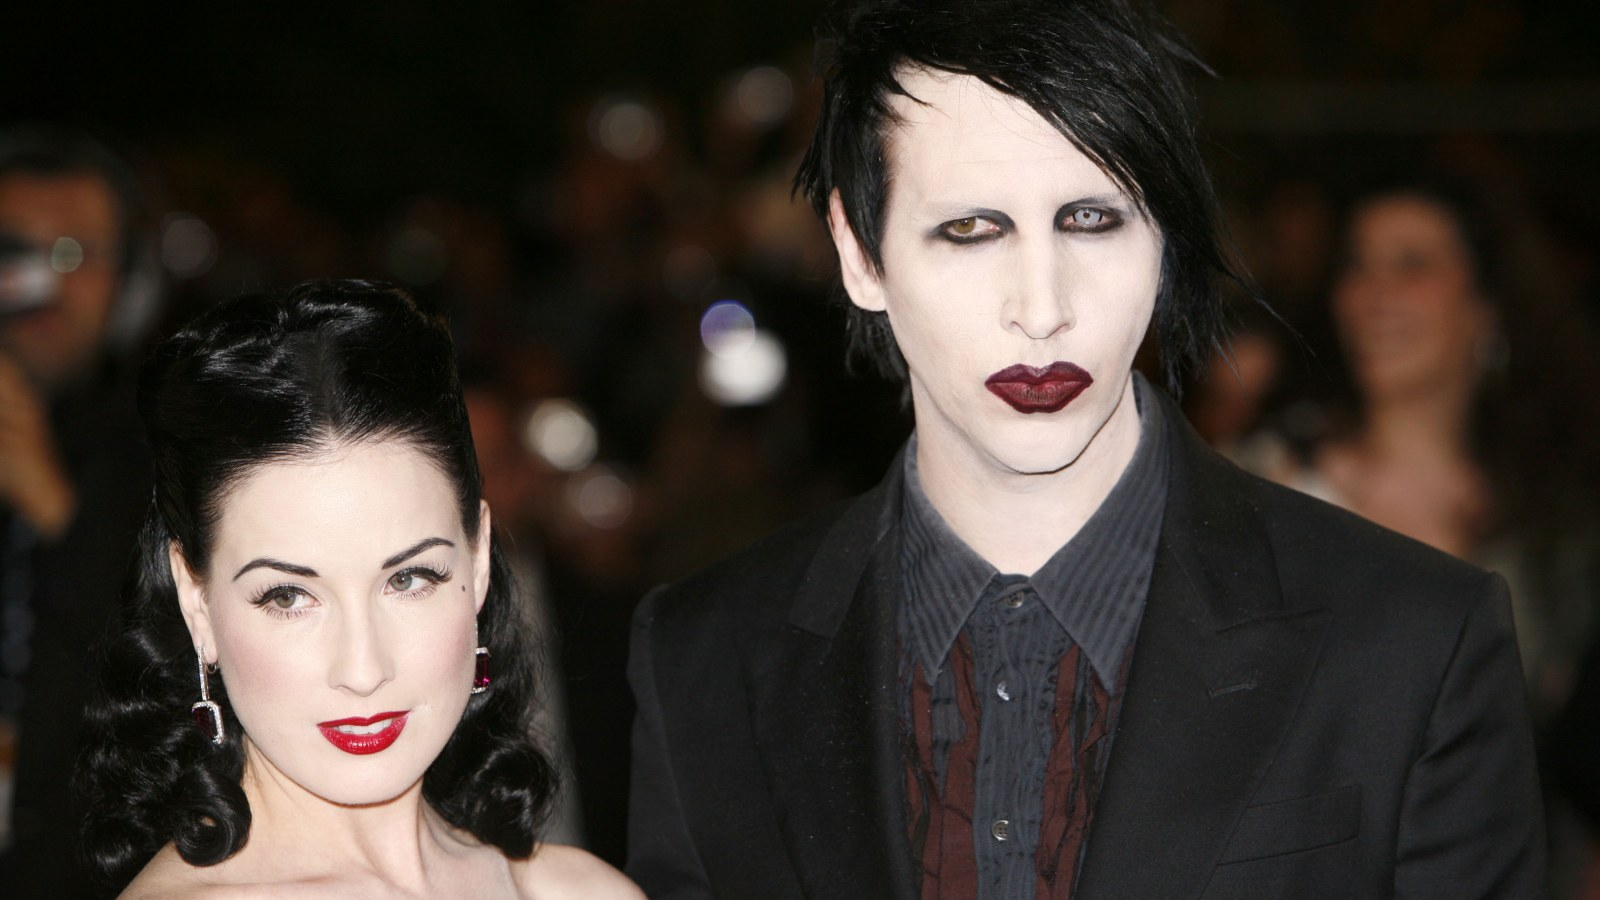 marilyn-mansons-ex-wife-dita-von-teese-speaks-out-amid-his-abuse-scandal-claims-she-did-not-have-the-same-experience